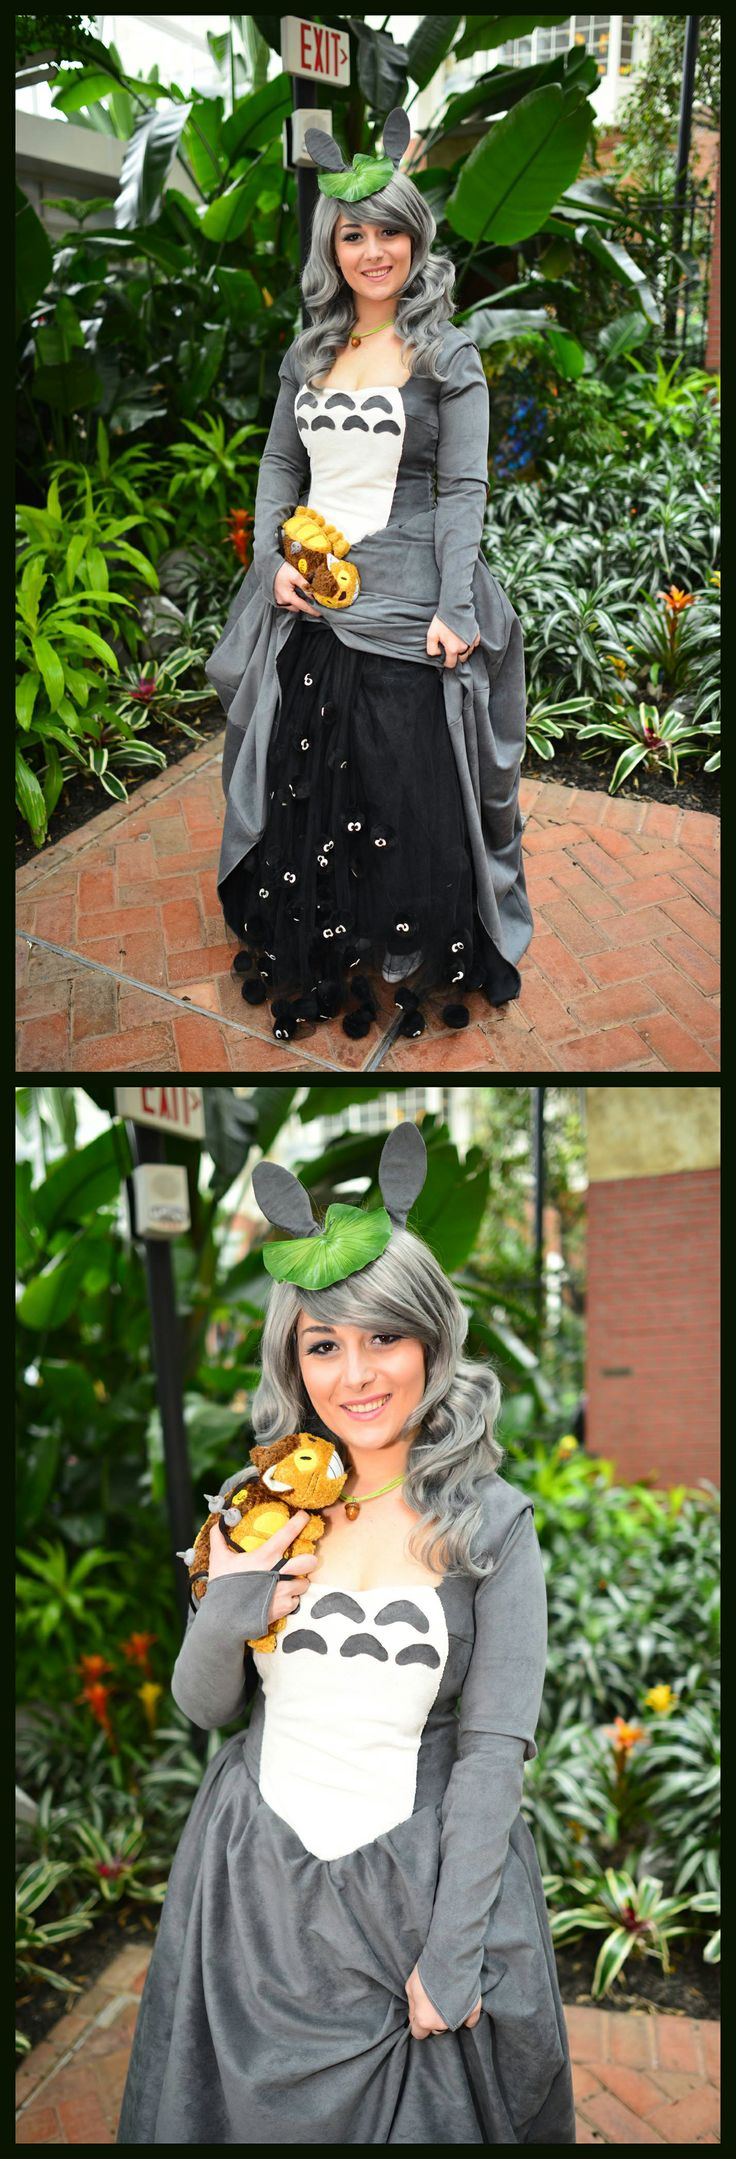 Totoro cosplay by Dustbunny, Photos by Martin Wong #KatsuCon2014